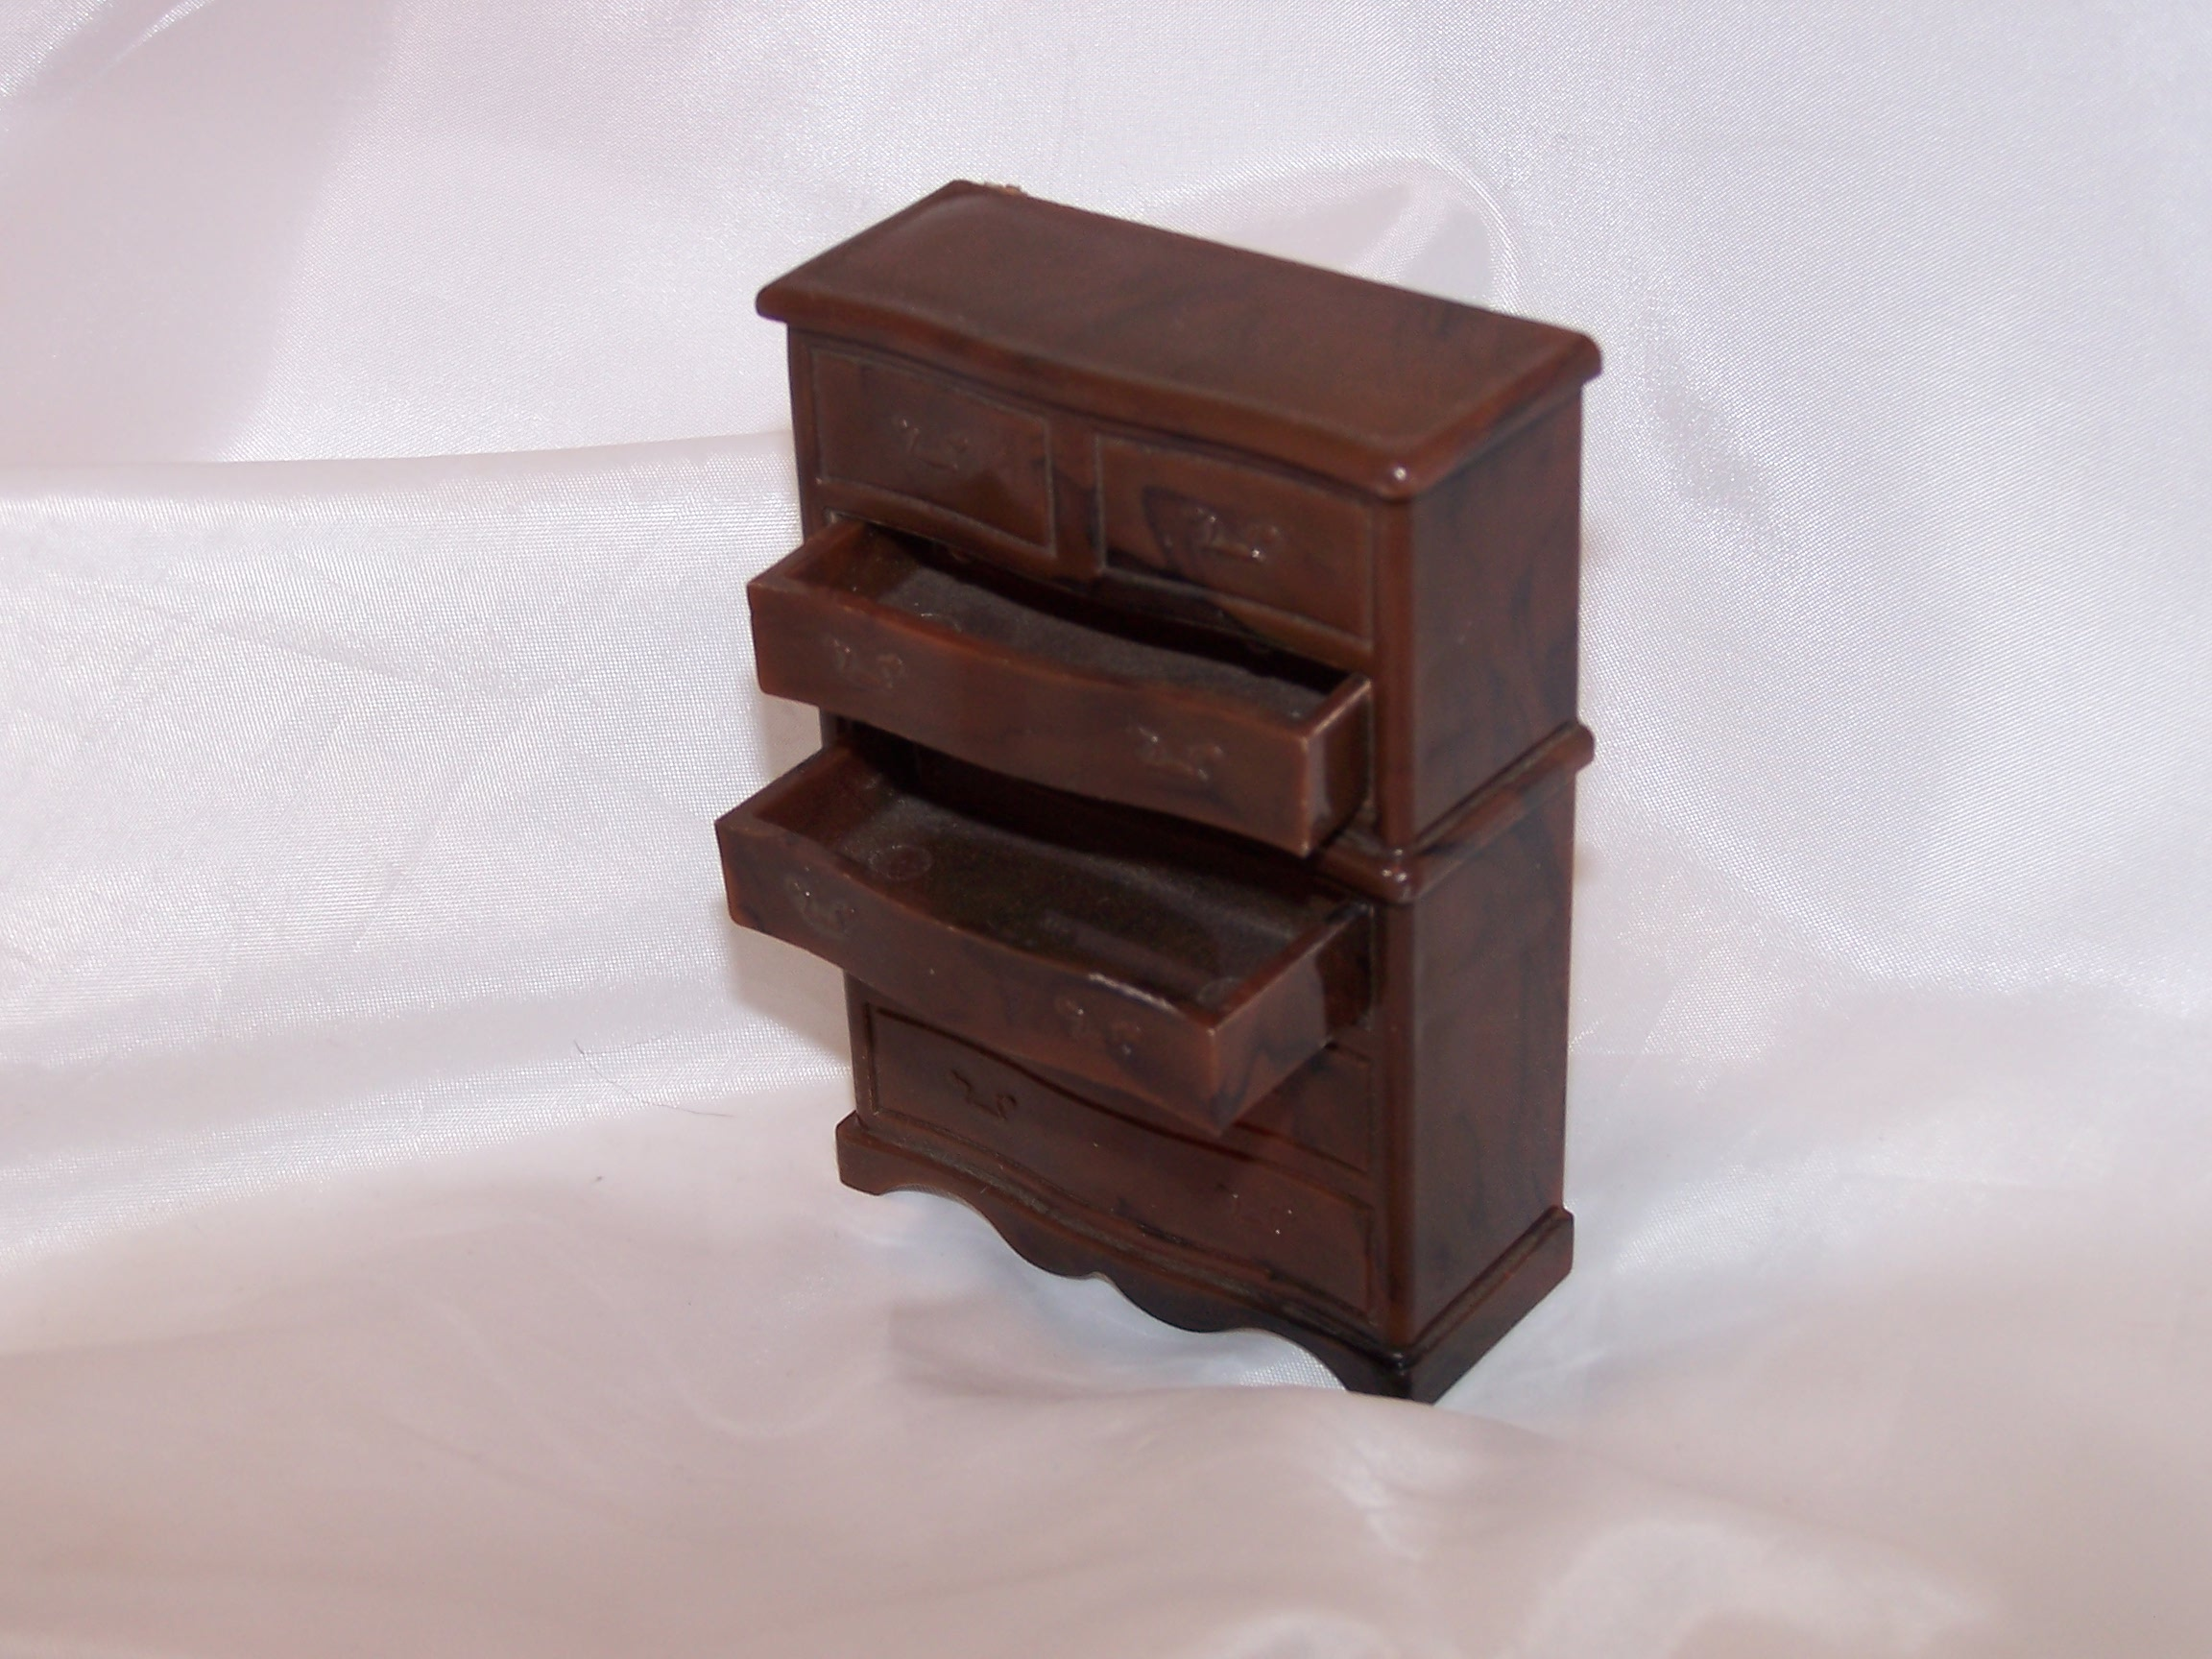 Image 5 of Dollhouse Dresser, Working Drawers, Renewal, Made in USA